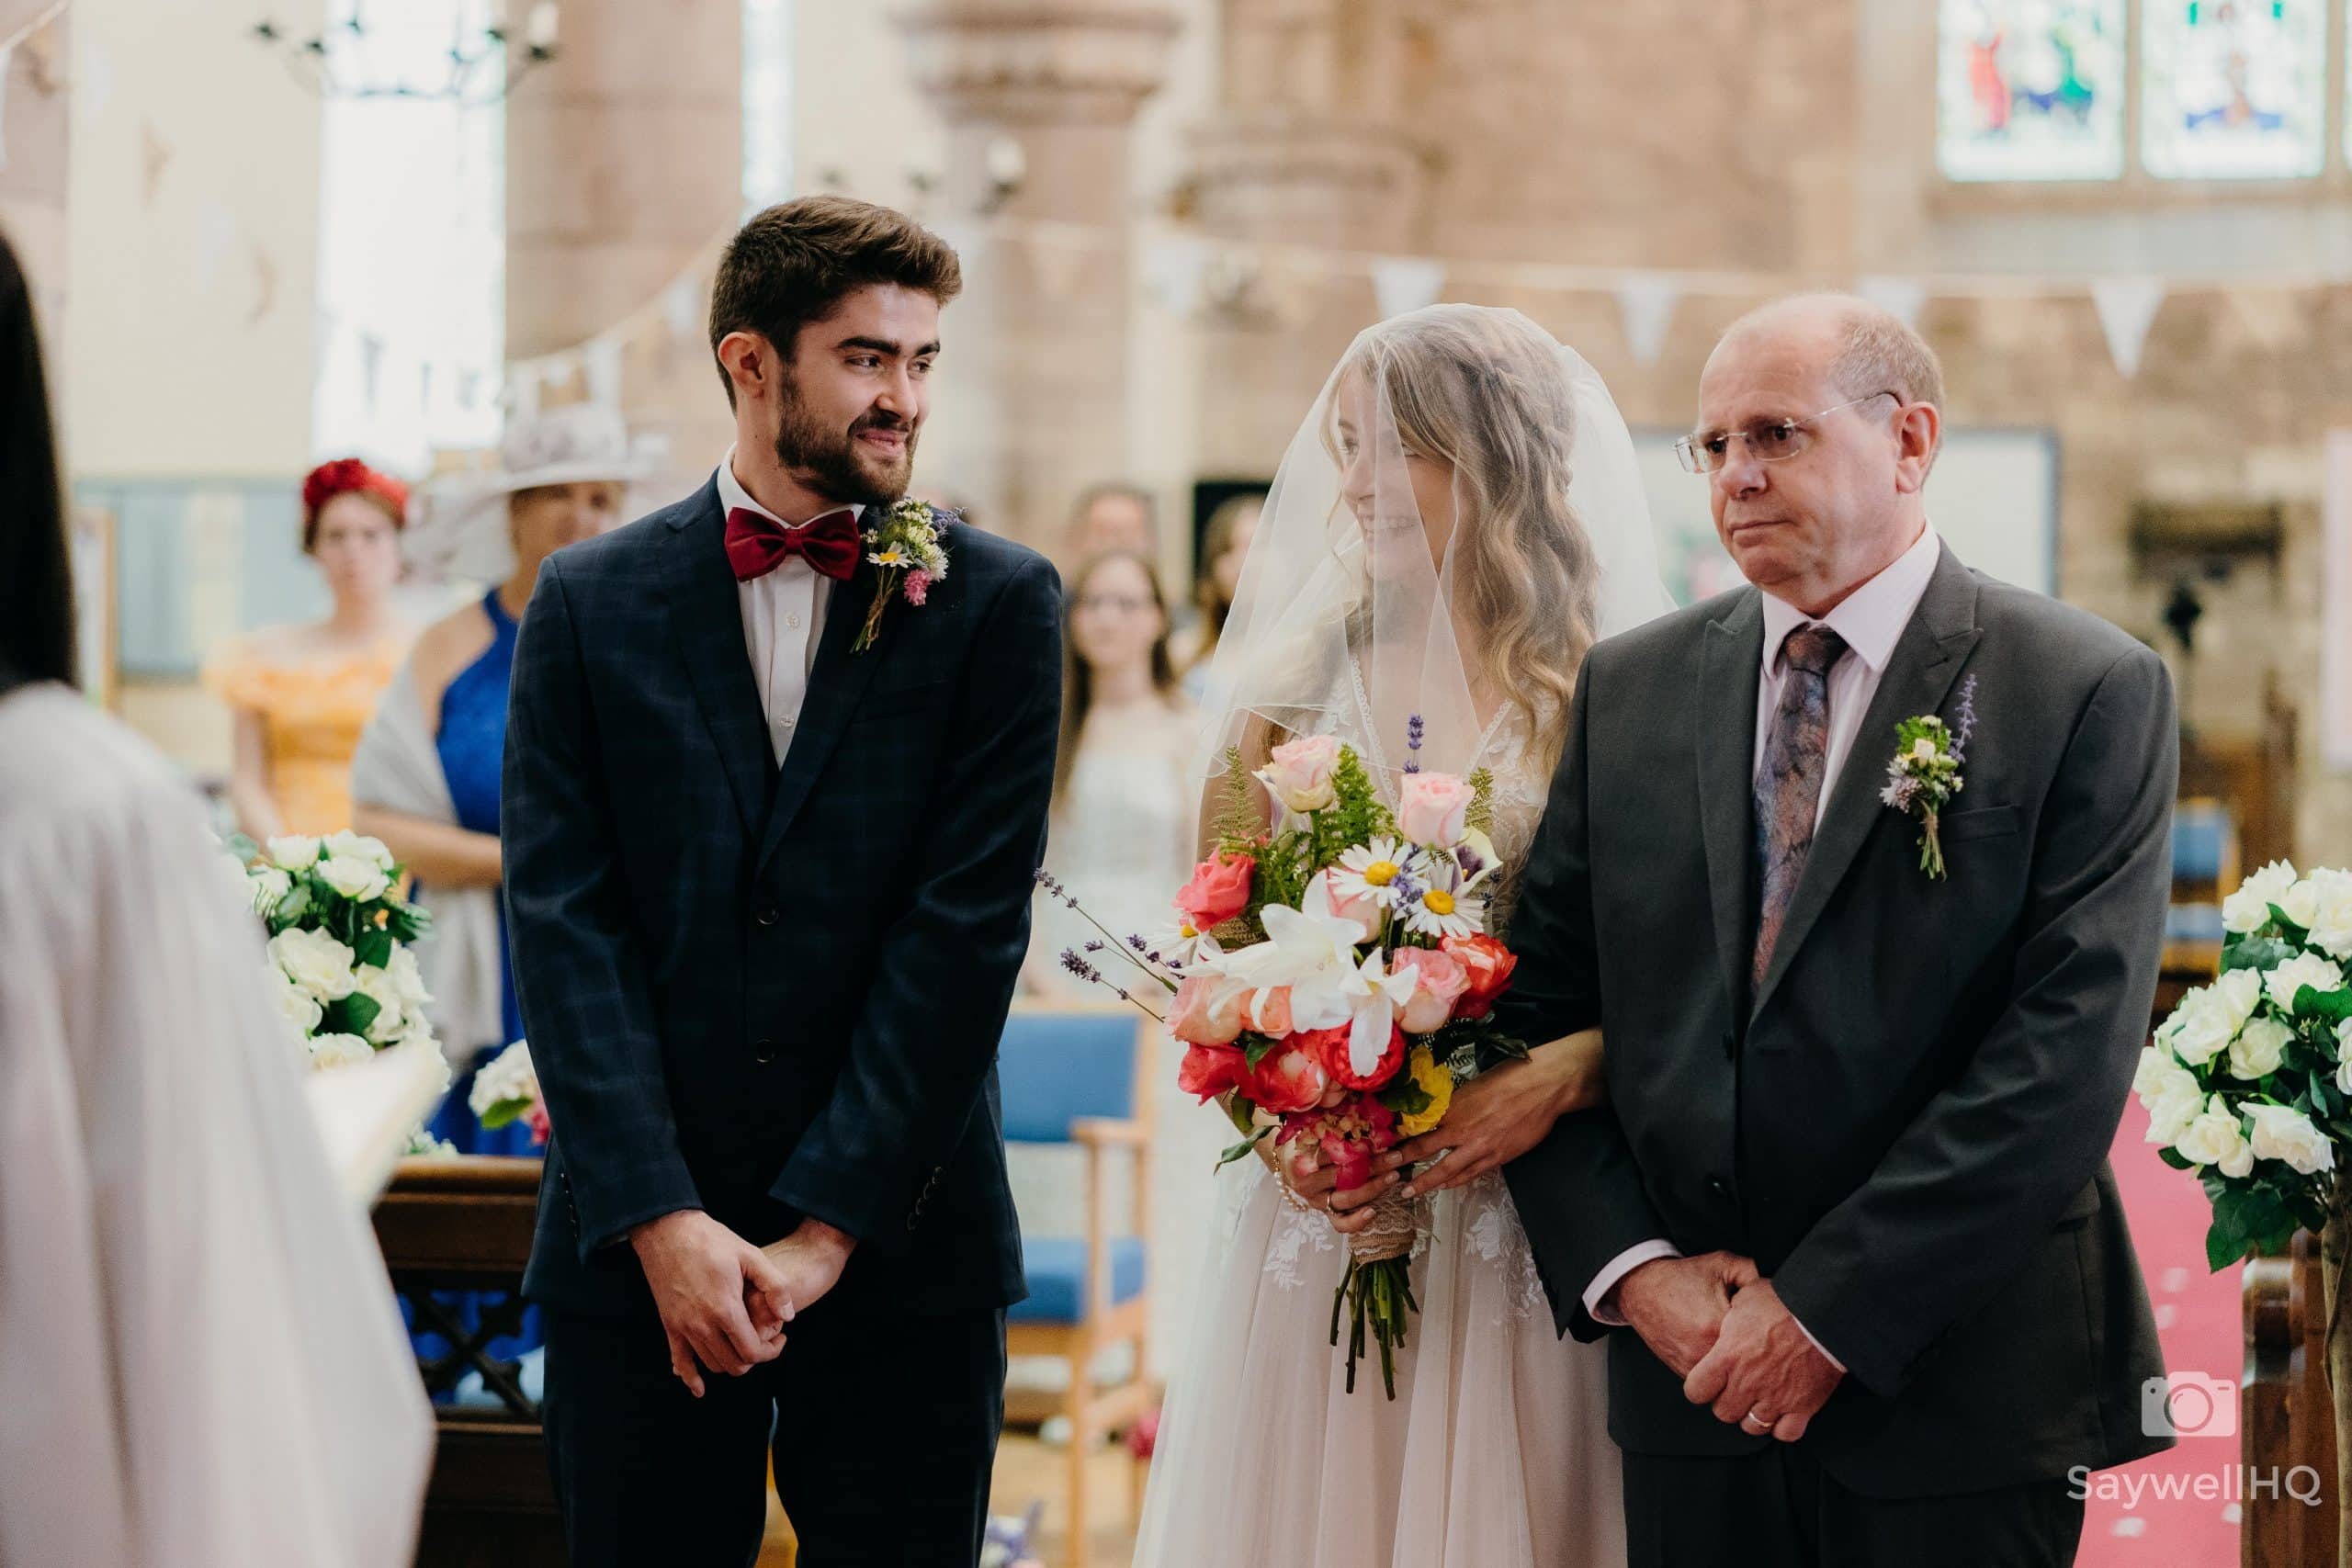 Bride and Groom share a loving glance at their COVID impacted wedding